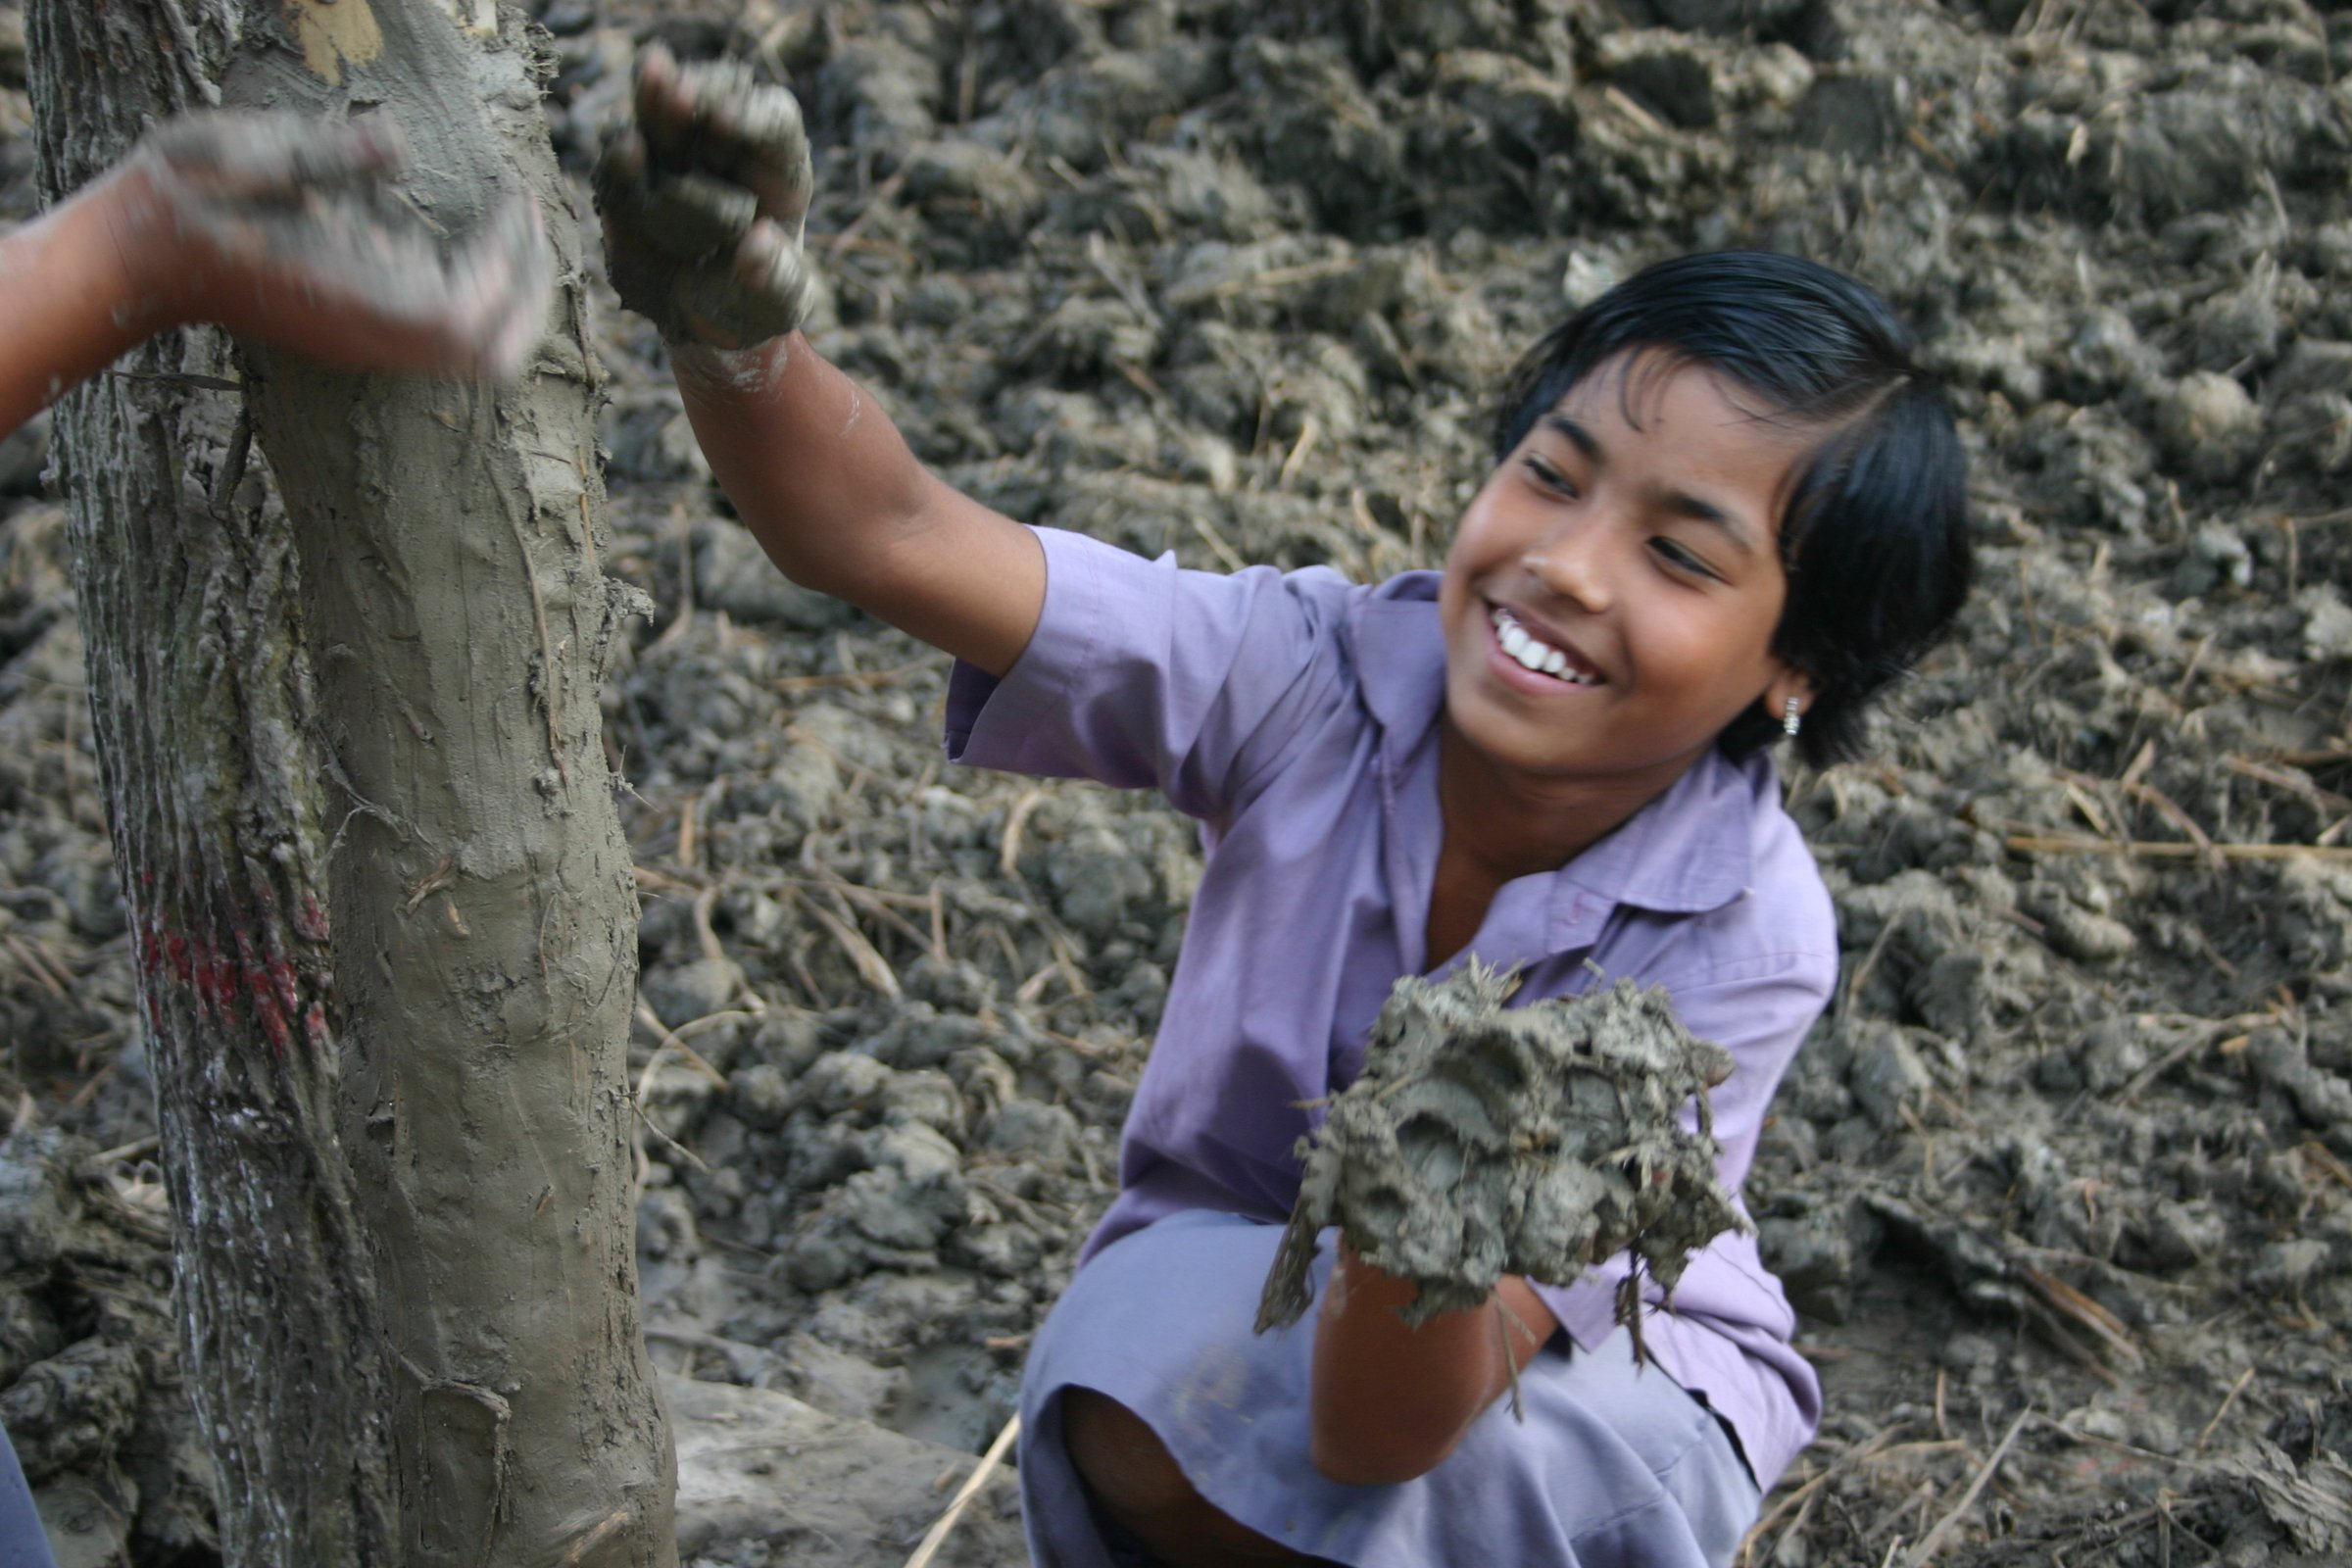 The METI School in Bangladesh used mud for walls and employed local people and craft throughout the project.